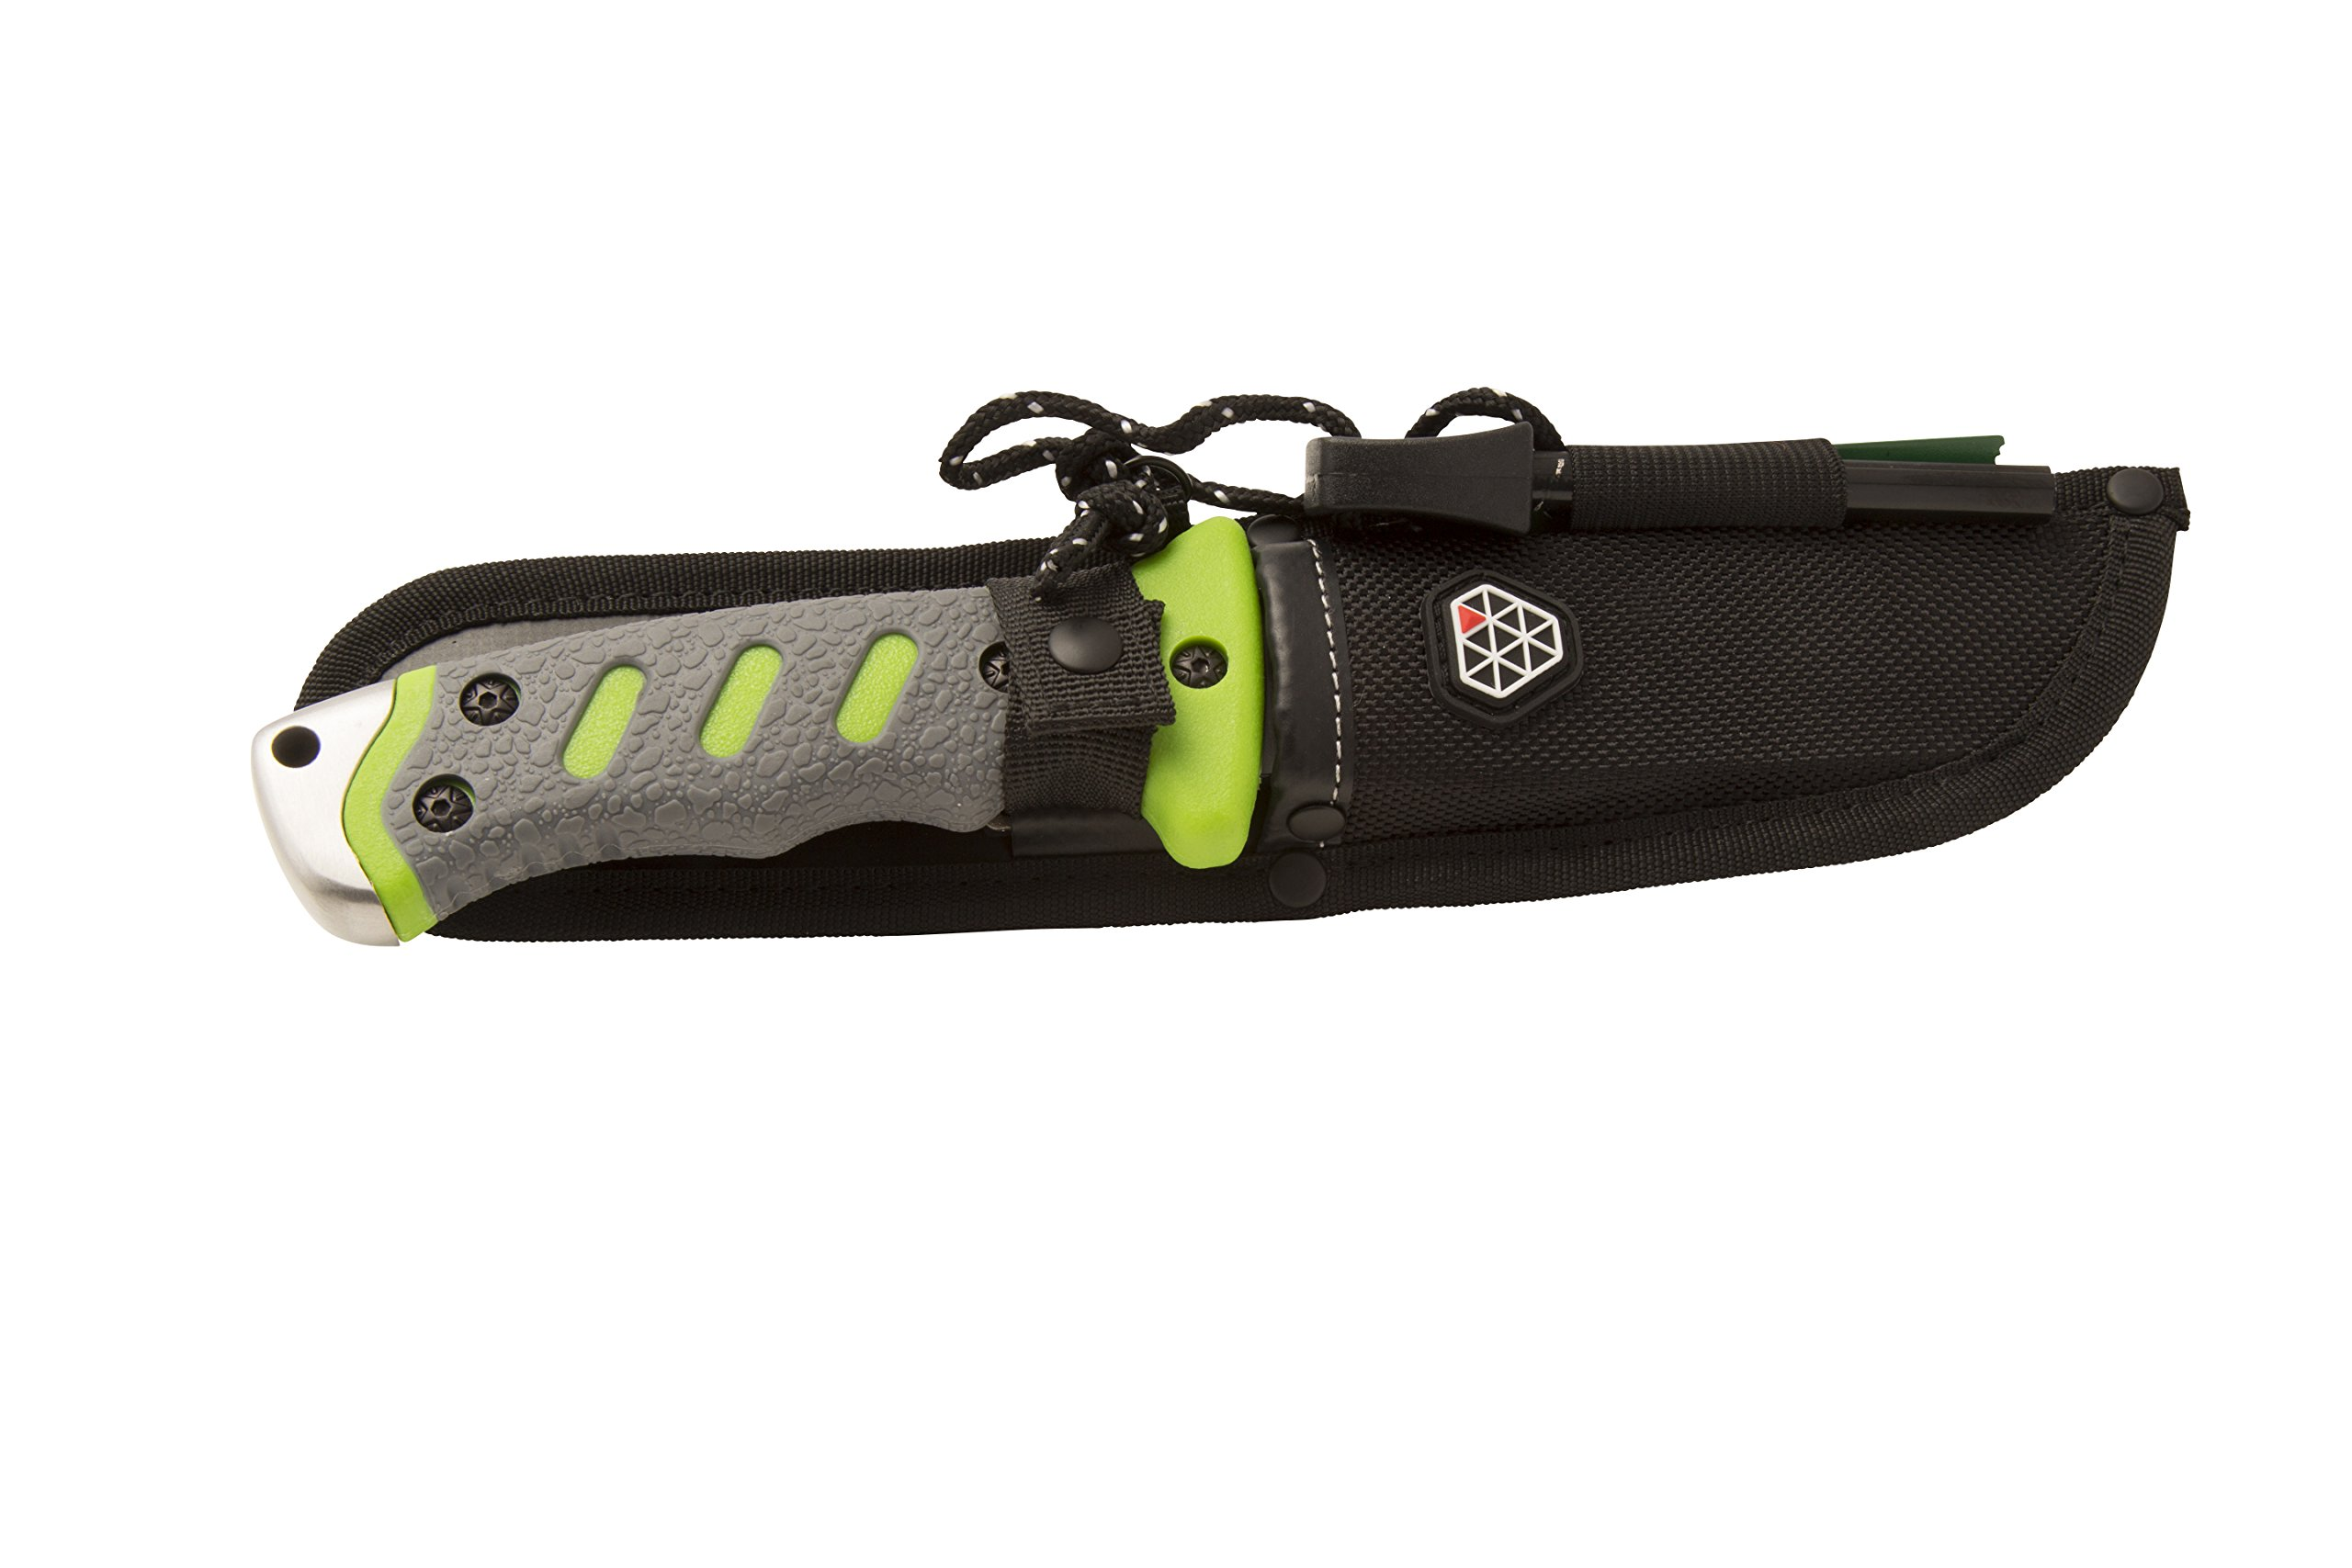 Boundary 92737 Outdoor Survival Knife with Fixed 4.5-inch Partially Serrated 420 Stainless Blade and Sheath, Survival Tools by Boundary (Image #3)